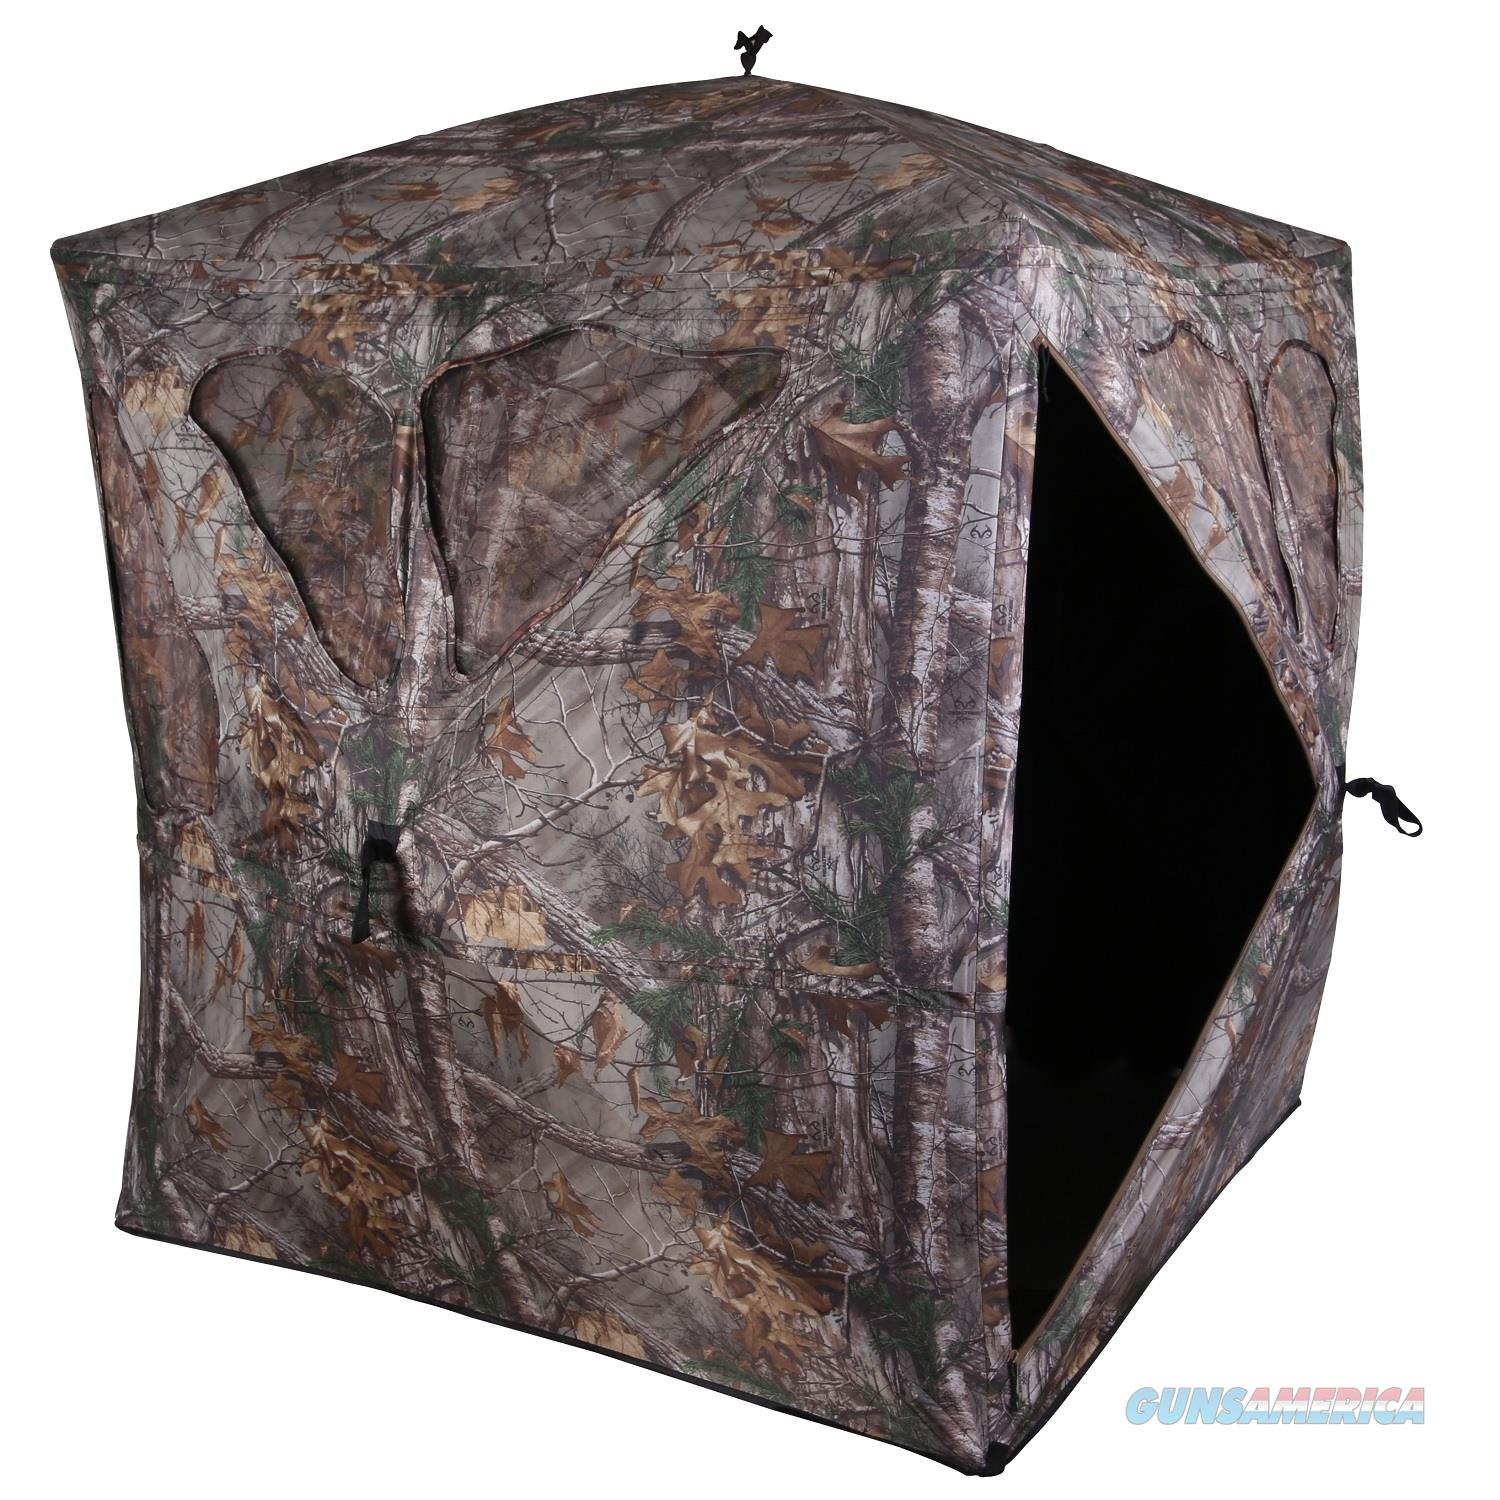 Ameristep Spirit Blind-75Inx75inx67in-Realtree Xtra 1RX3H117FR  Non-Guns > Hunting Clothing and Equipment > Blinds